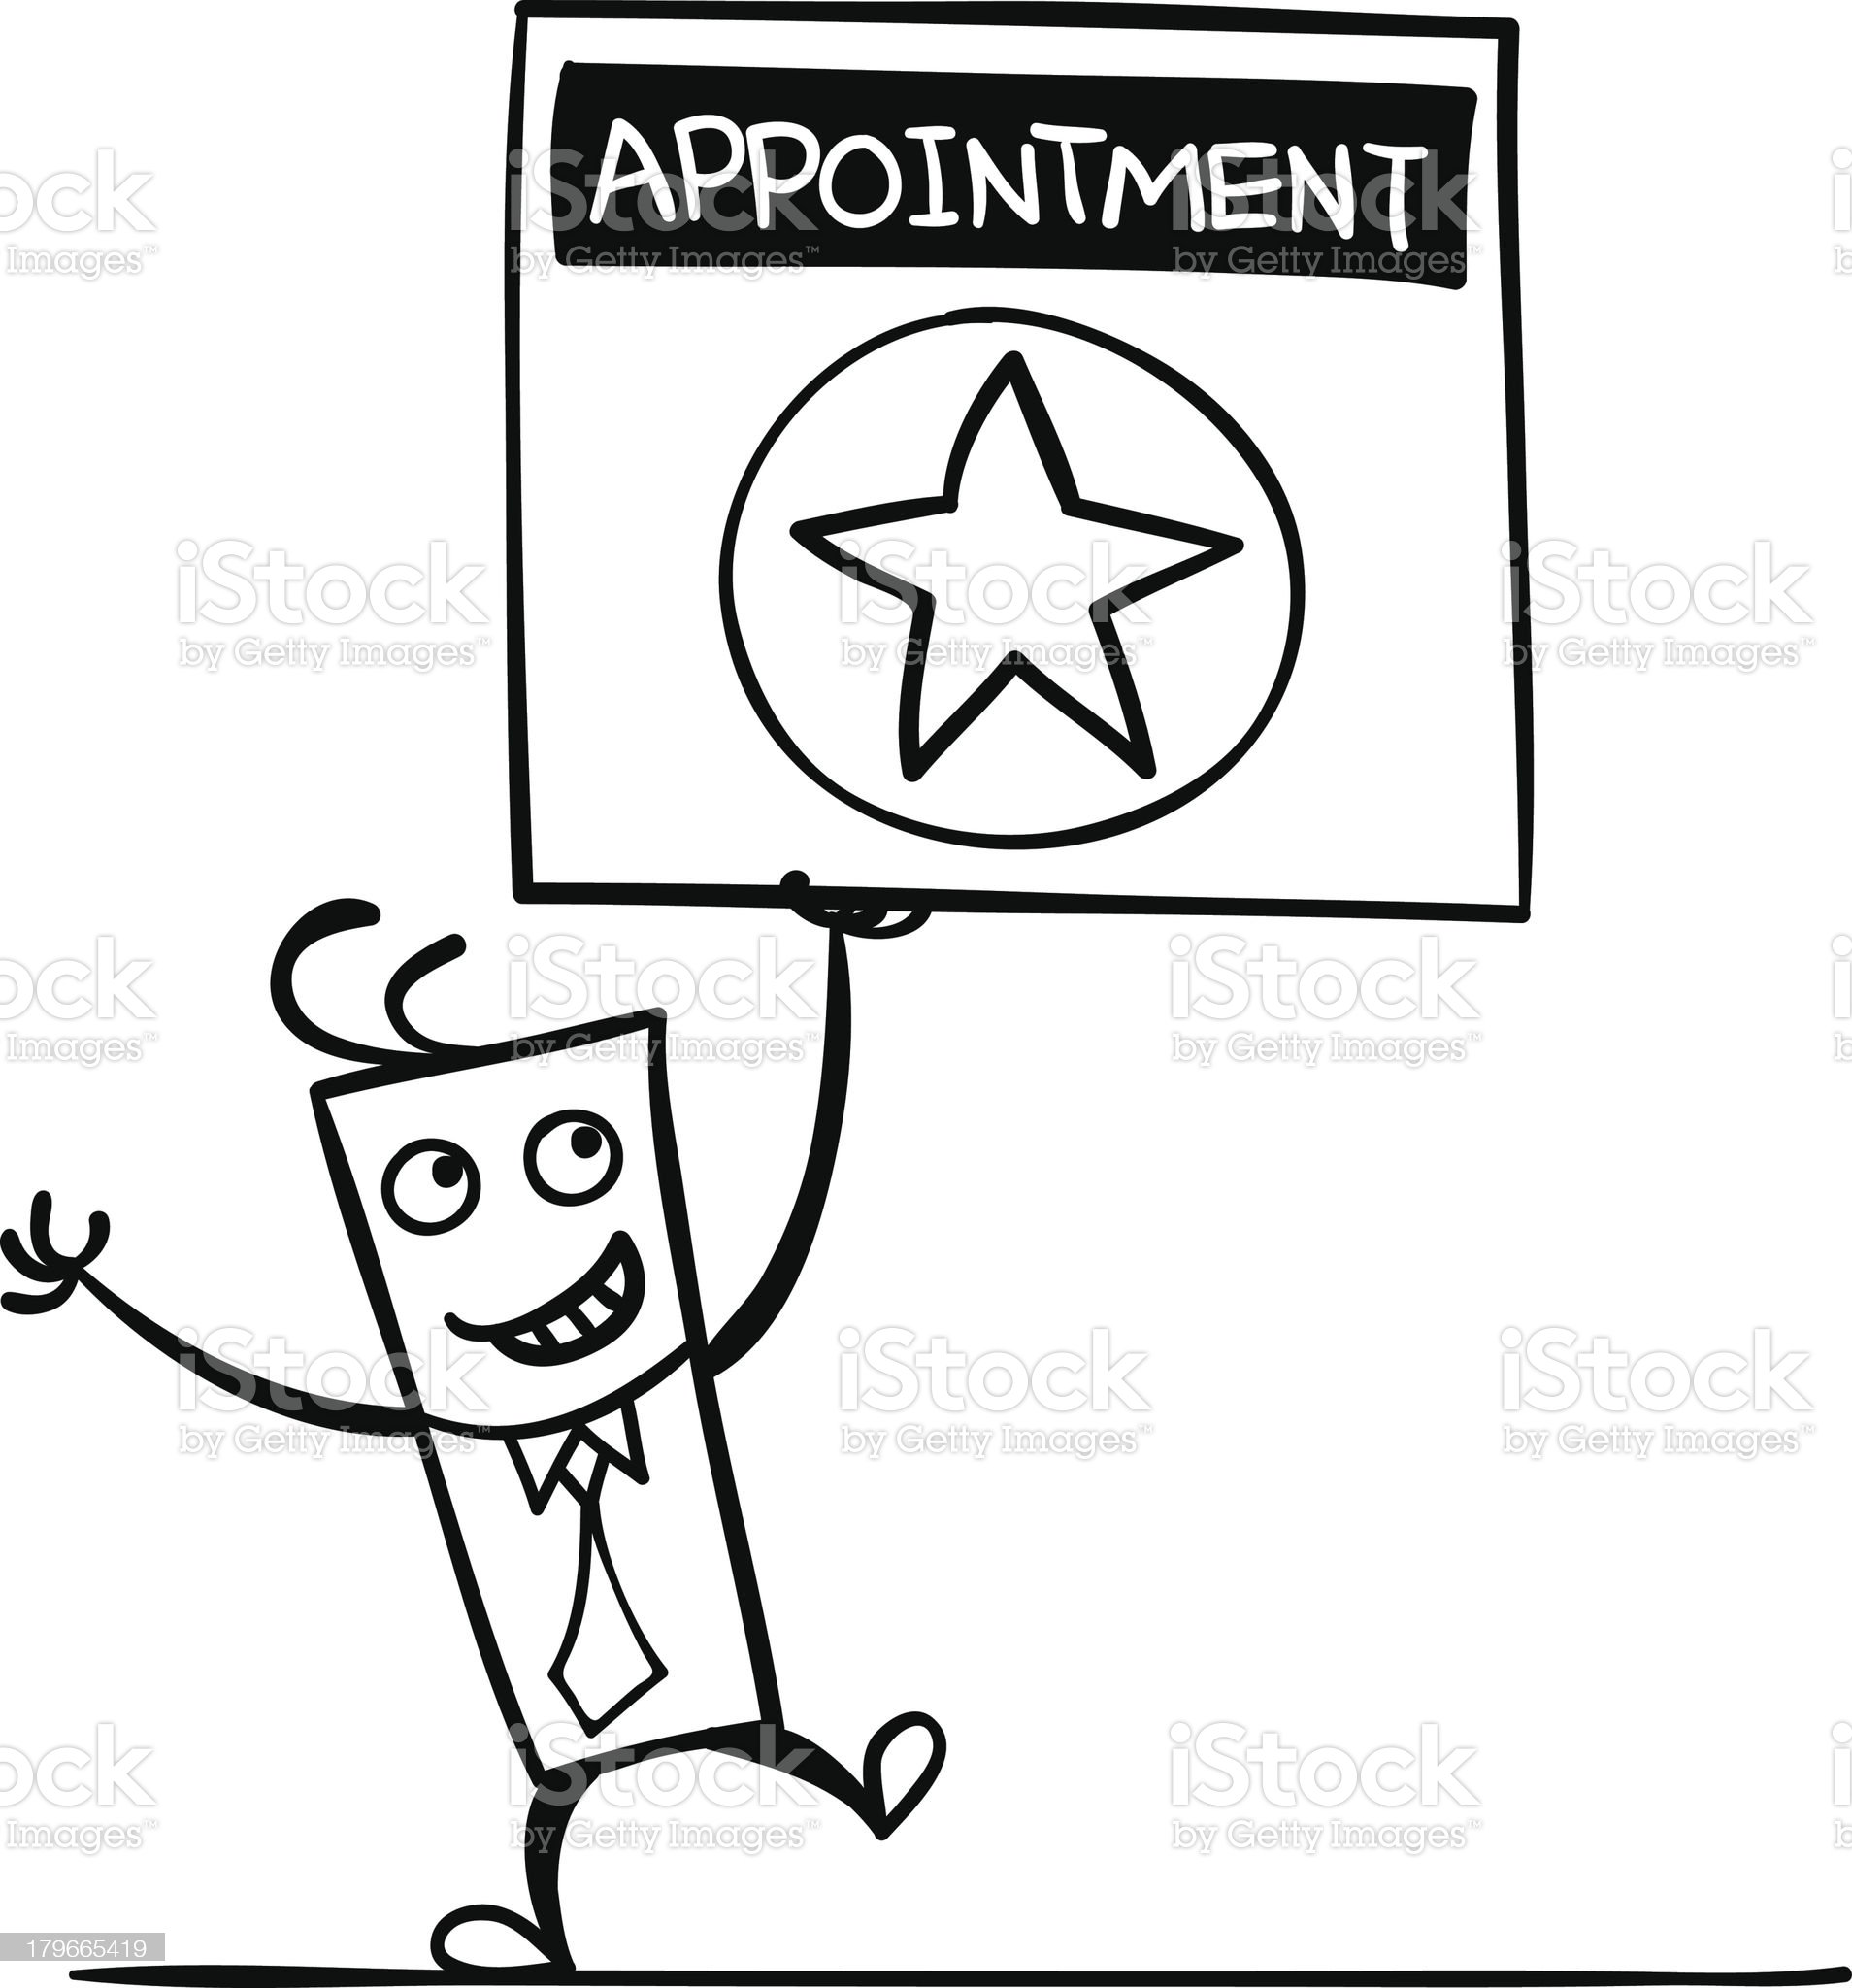 Appointment royalty-free stock vector art